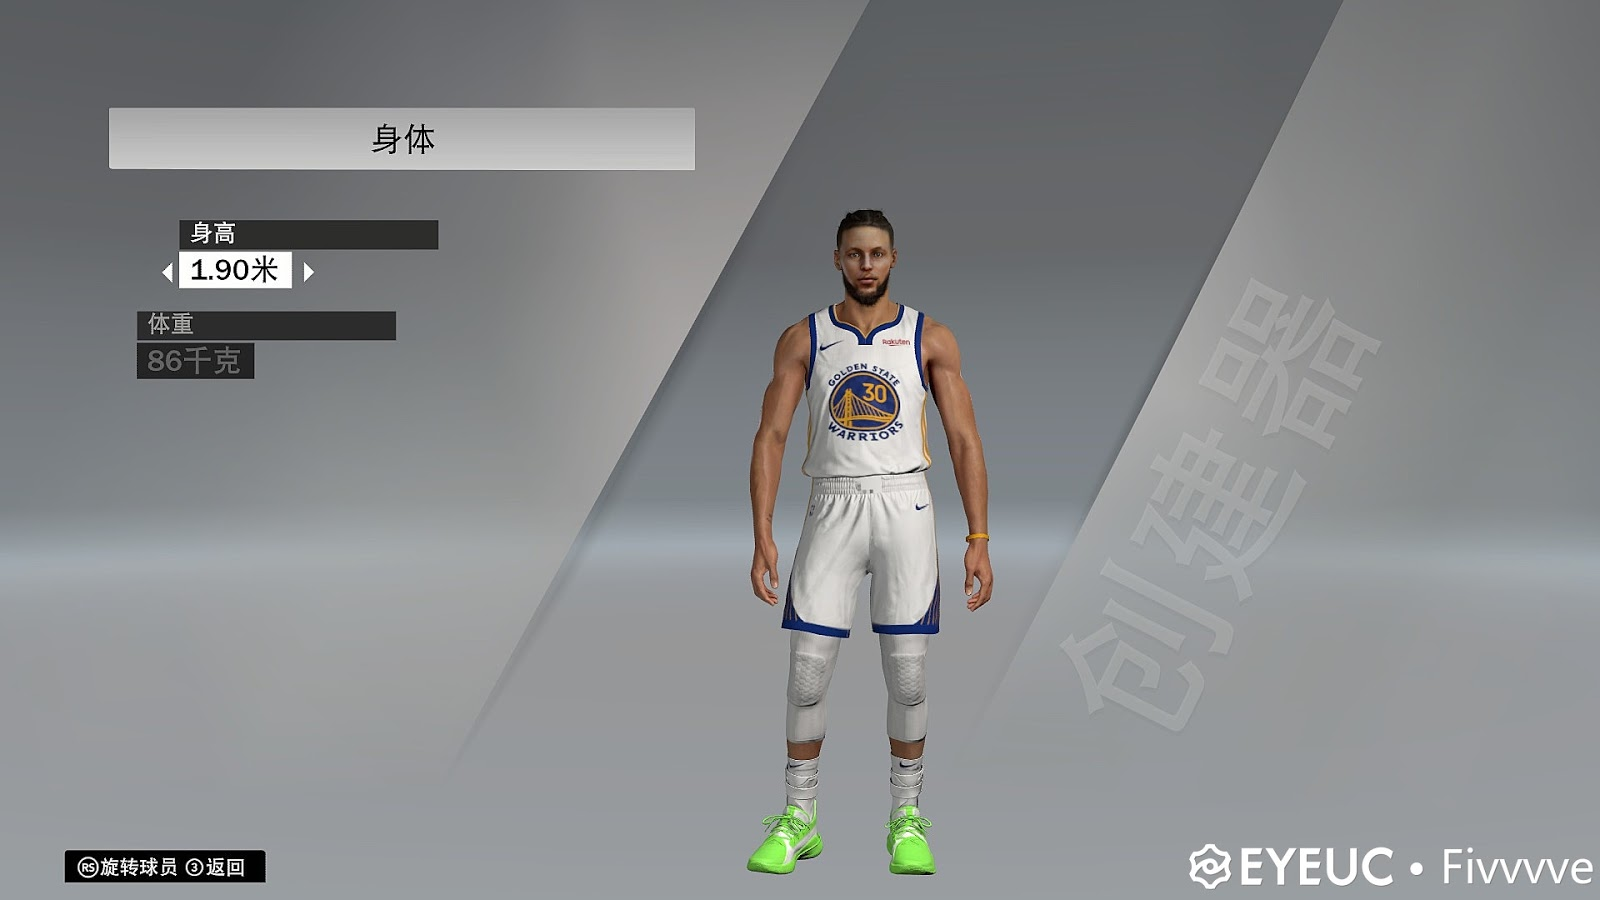 Shuajota Your Site For Nba 2k Mods Nba 2k20 Stephen Curry Cyberface With Hair Braid And Body Model V2 By Five